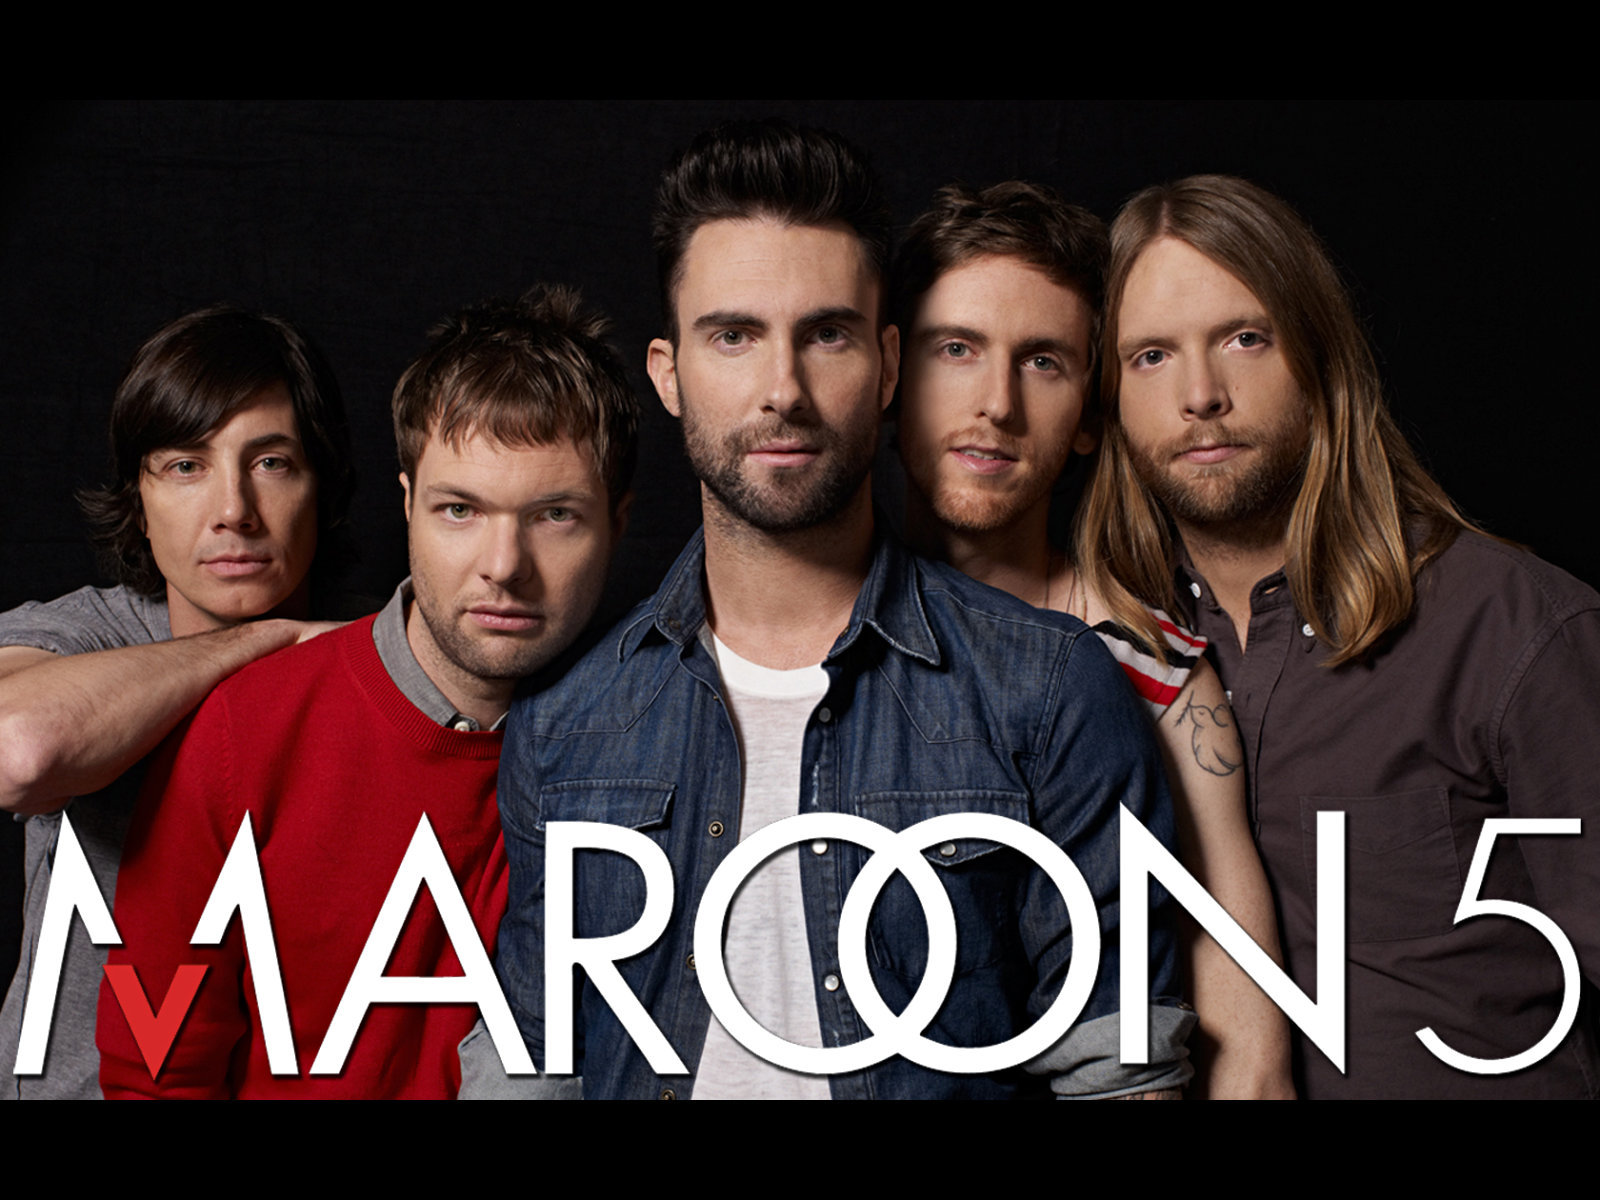 Maroon 5 to Perform During 'America's Got Talent' Live Results Show September 3 - Ratings | TVbytheNumbers.Zap2it.com